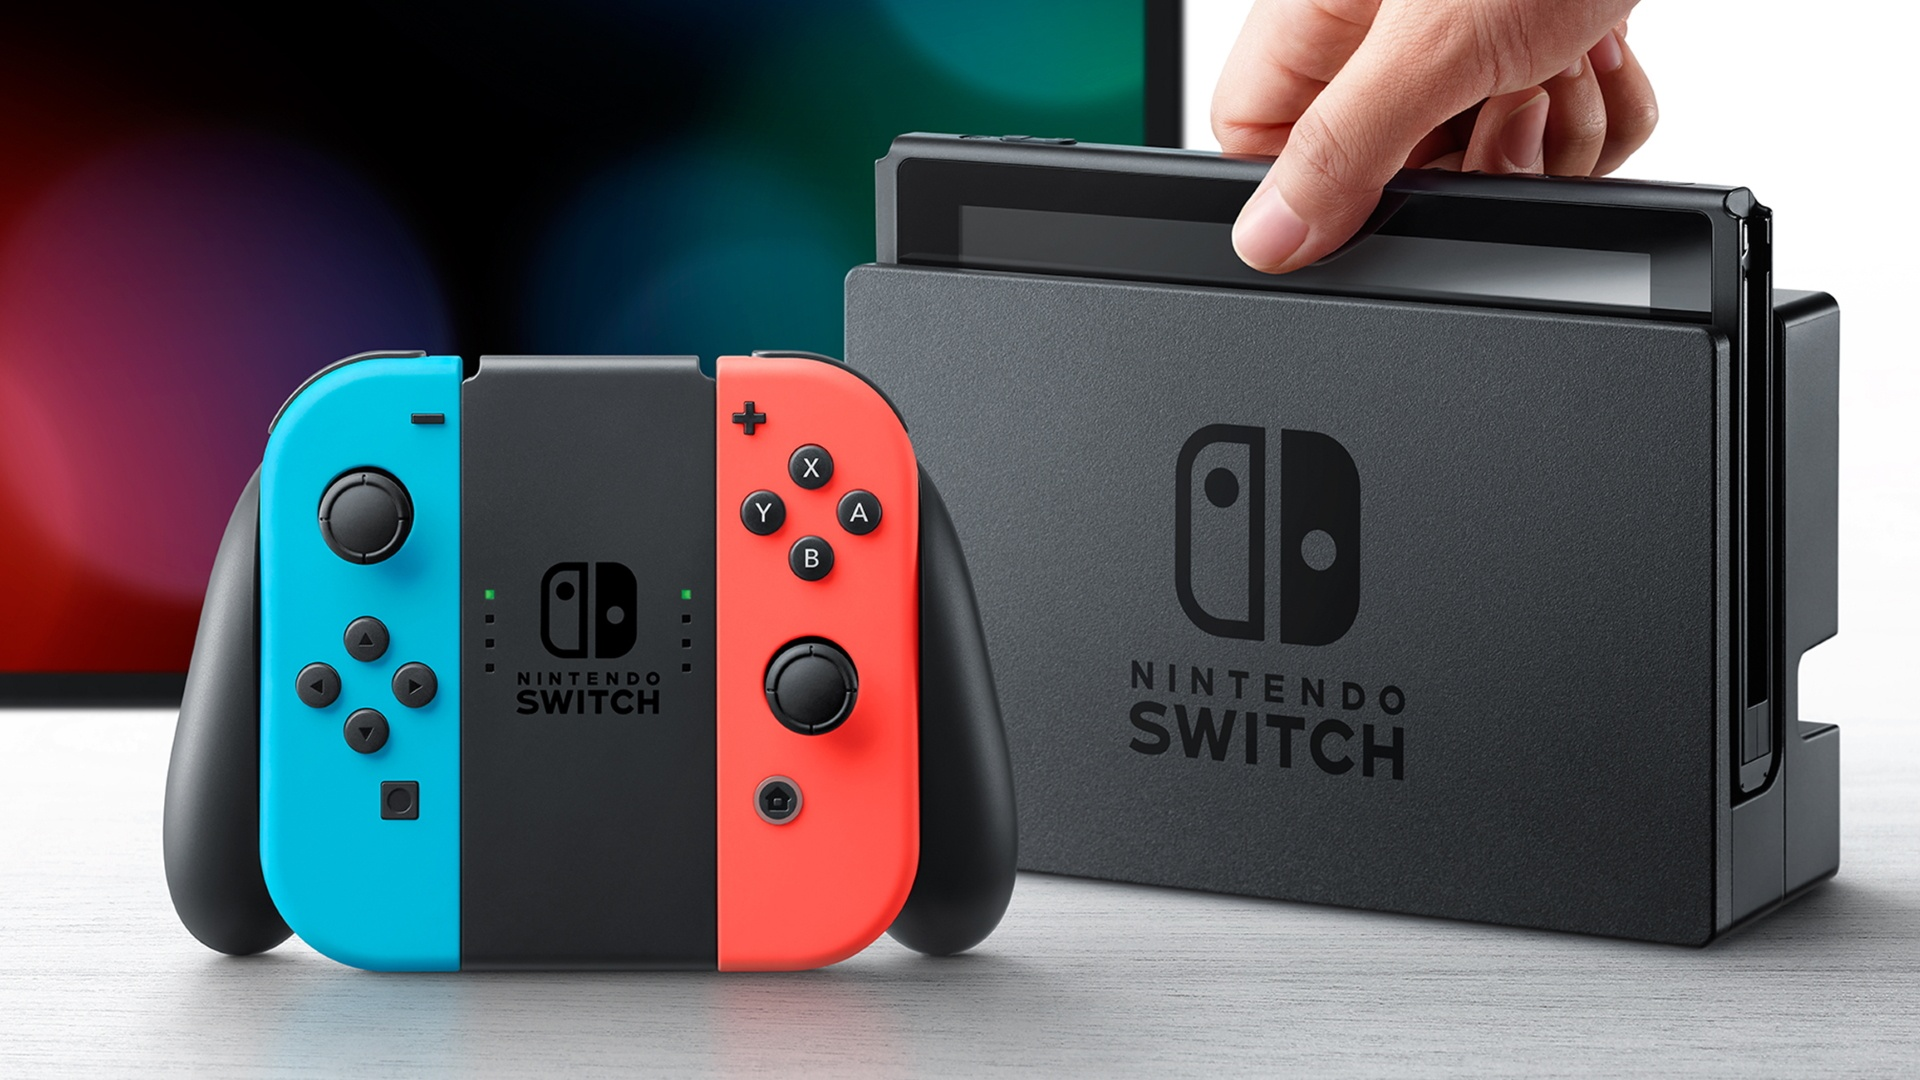 На Nintendo Switch добавили возможность переназначать кнопки управления